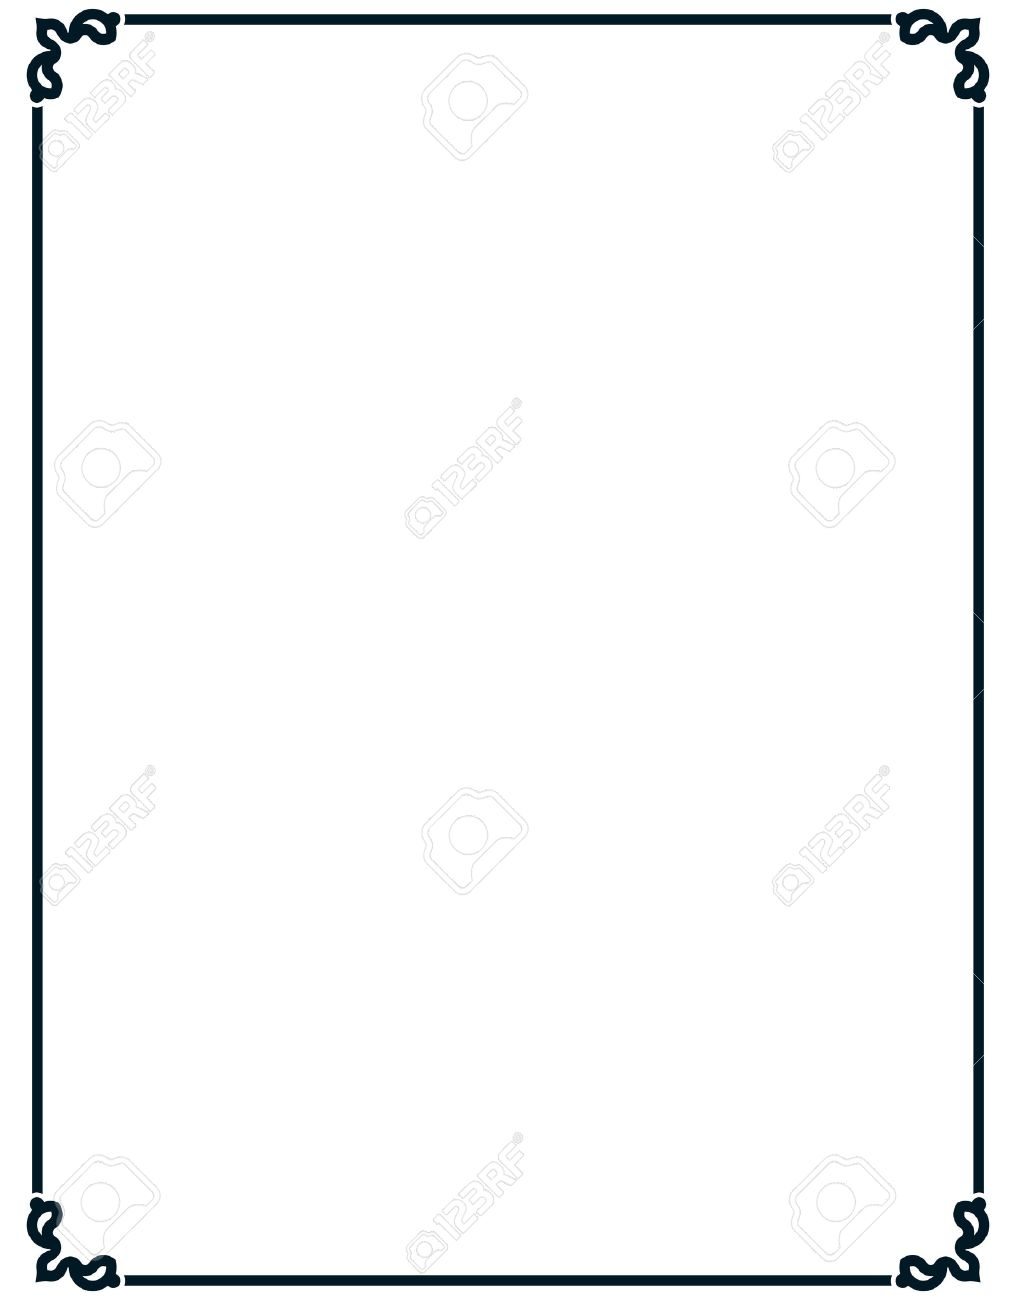 1016x1300 Border Frame Deco Vector Art Simple Line Corner Royalty Free